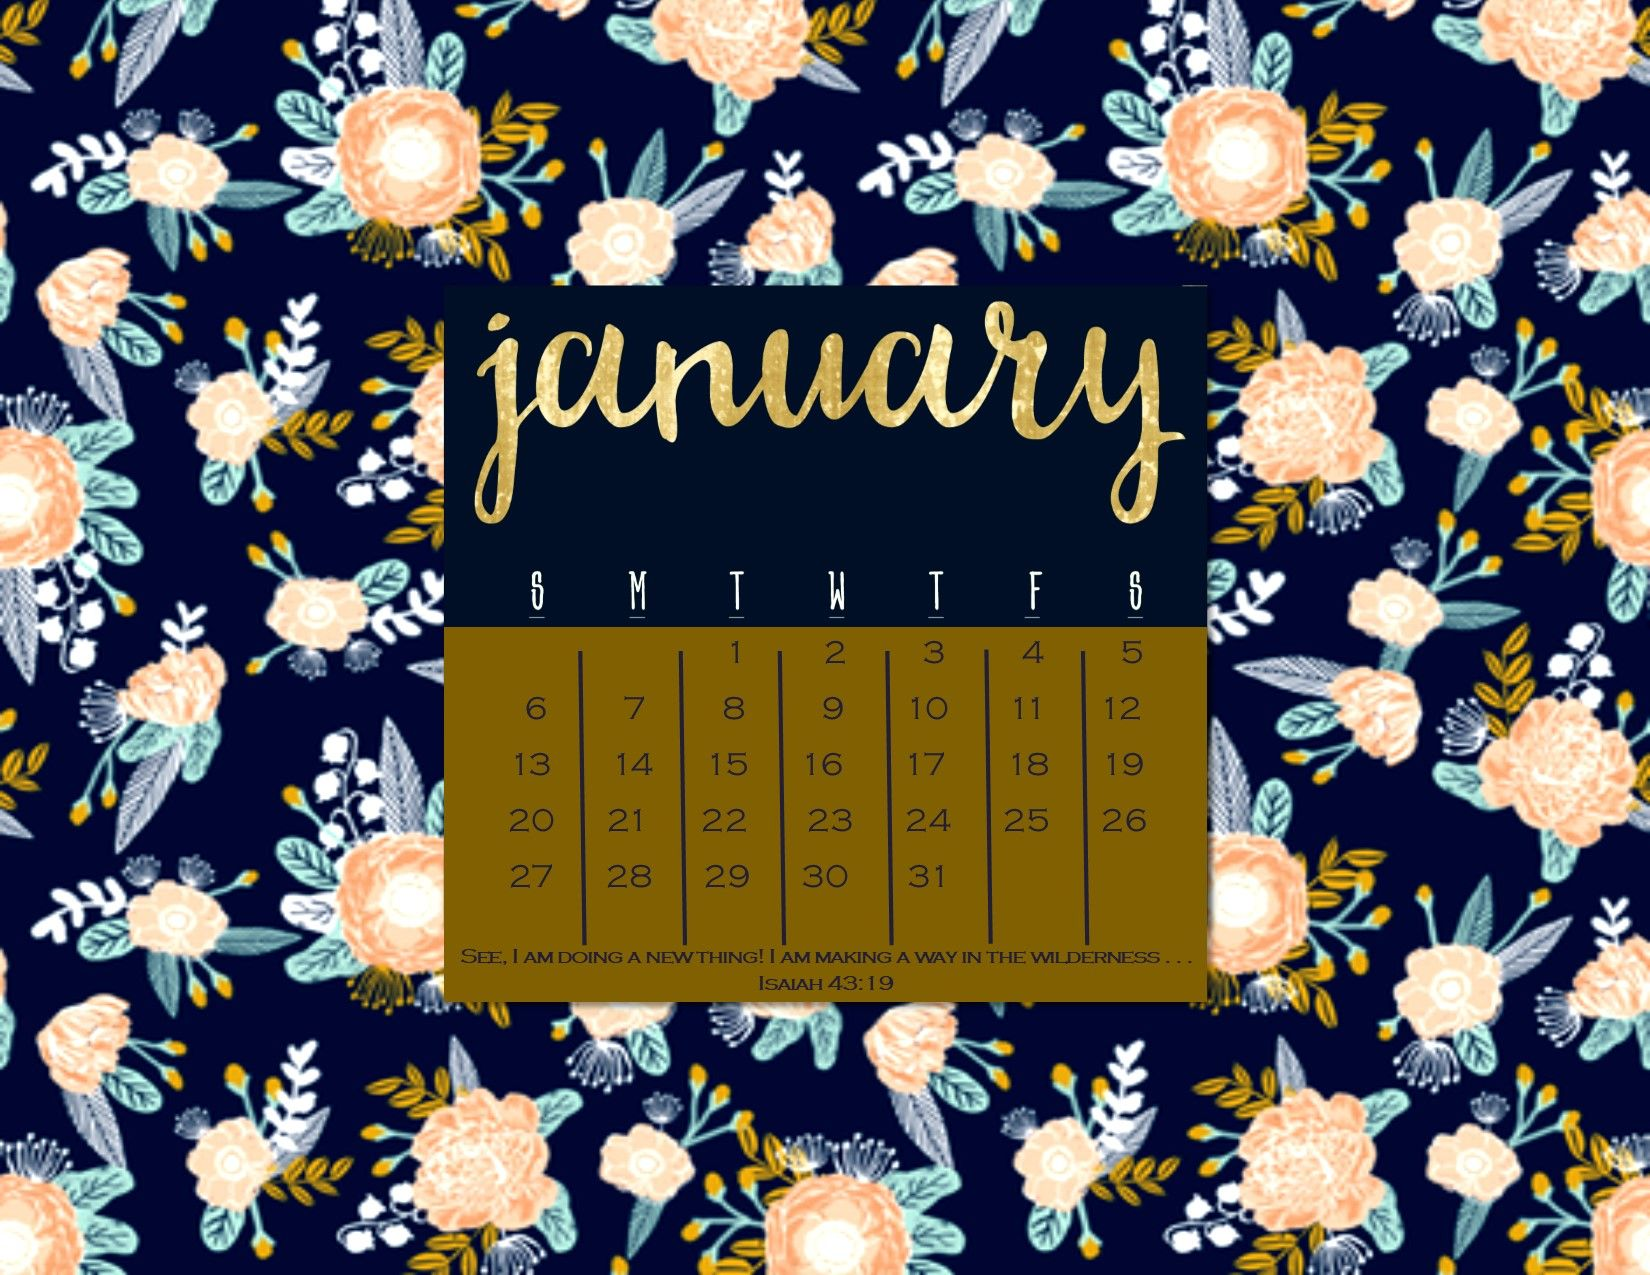 January 2019 Desktop Calendar Wallpaper Winter Floral